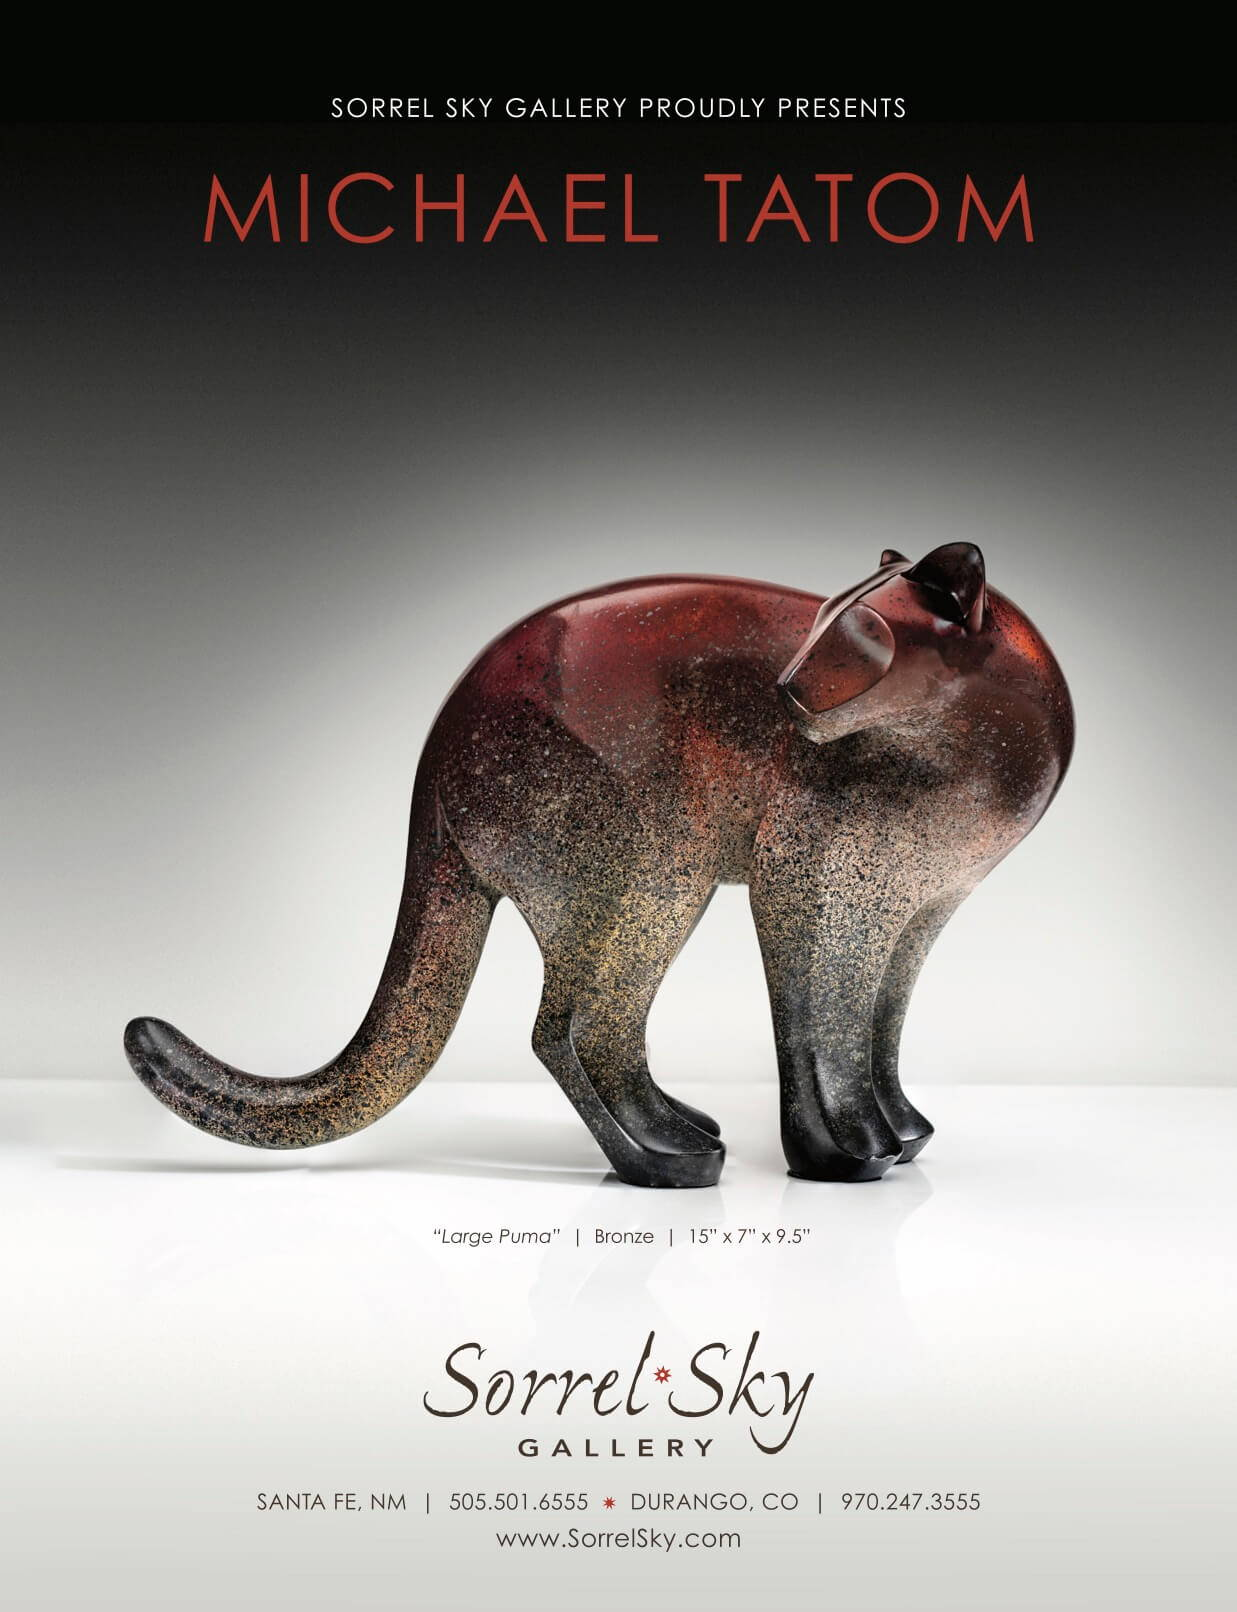 Michael Tatom. Sorrel Sky Gallery. Santa Fe Art Gallery. Bronze Sculpture. Kevin Red Star. Star Liana York.